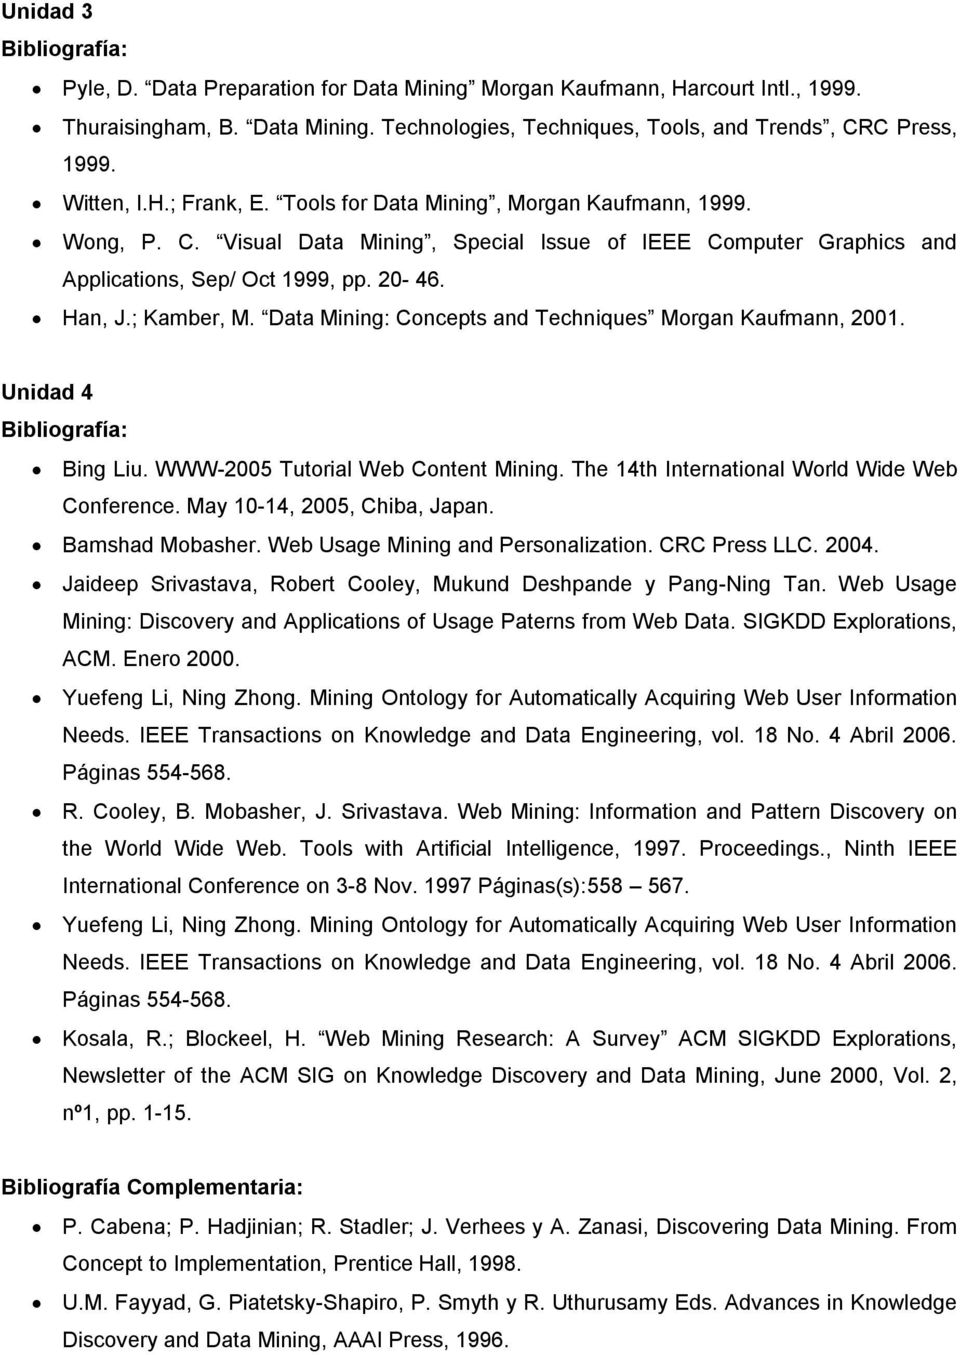 Data Mining: Concepts and Techniques Morgan Kaufmann, 2001. Unidad 4 Bing Liu. WWW-2005 Tutorial Web Content Mining. The 14th International World Wide Web Conference. May 10-14, 2005, Chiba, Japan.